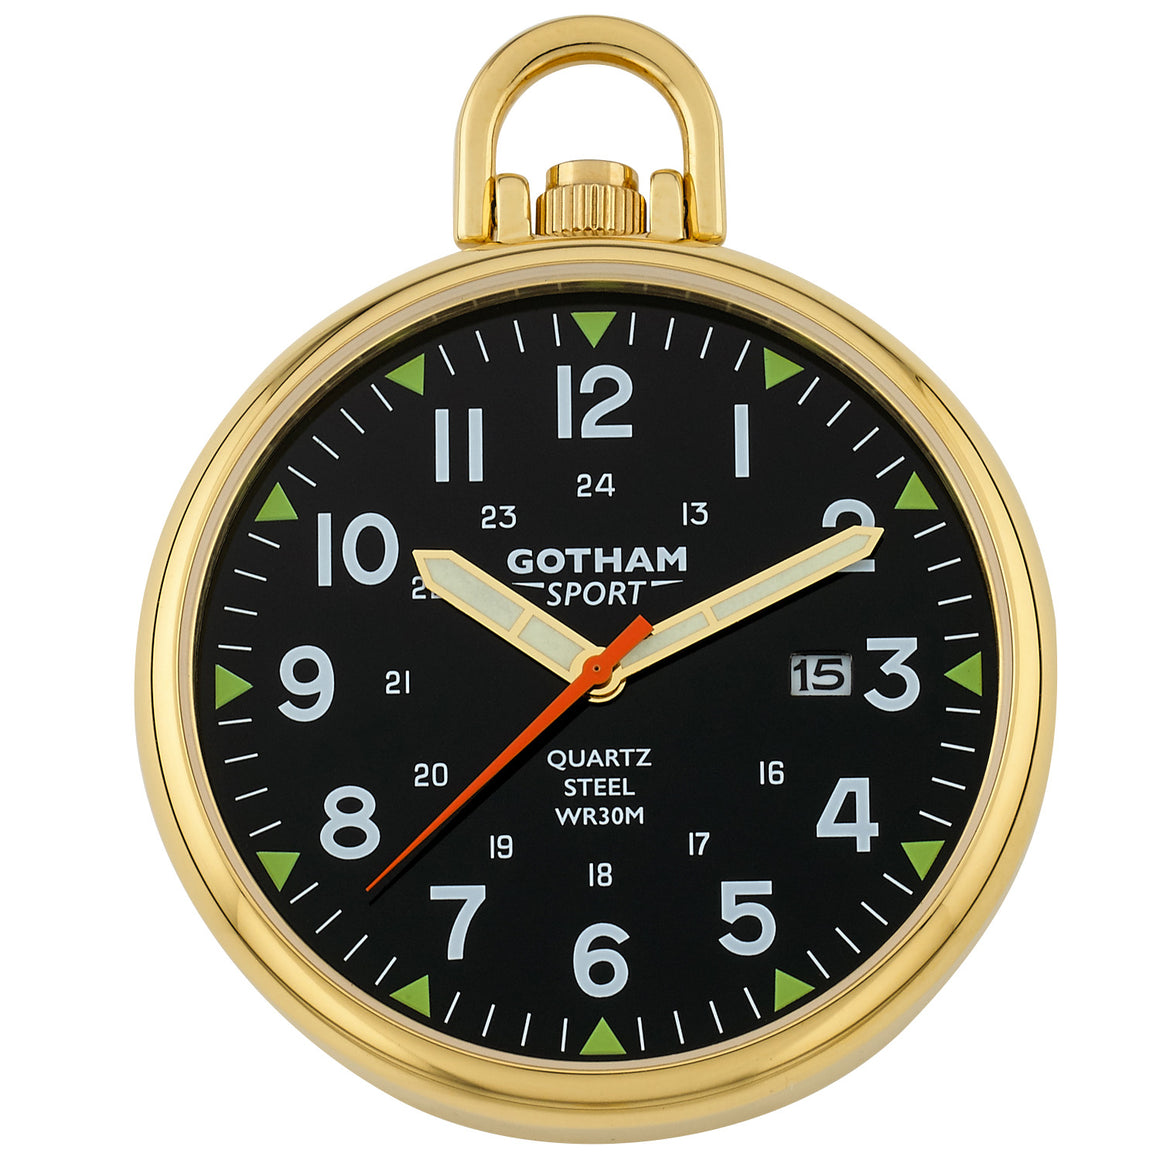 Gotham Men's Sport Series Gold-Plated Stainless Steel Analog Quartz Date Pocket Watch # GWC14109GB - Gotham Watch